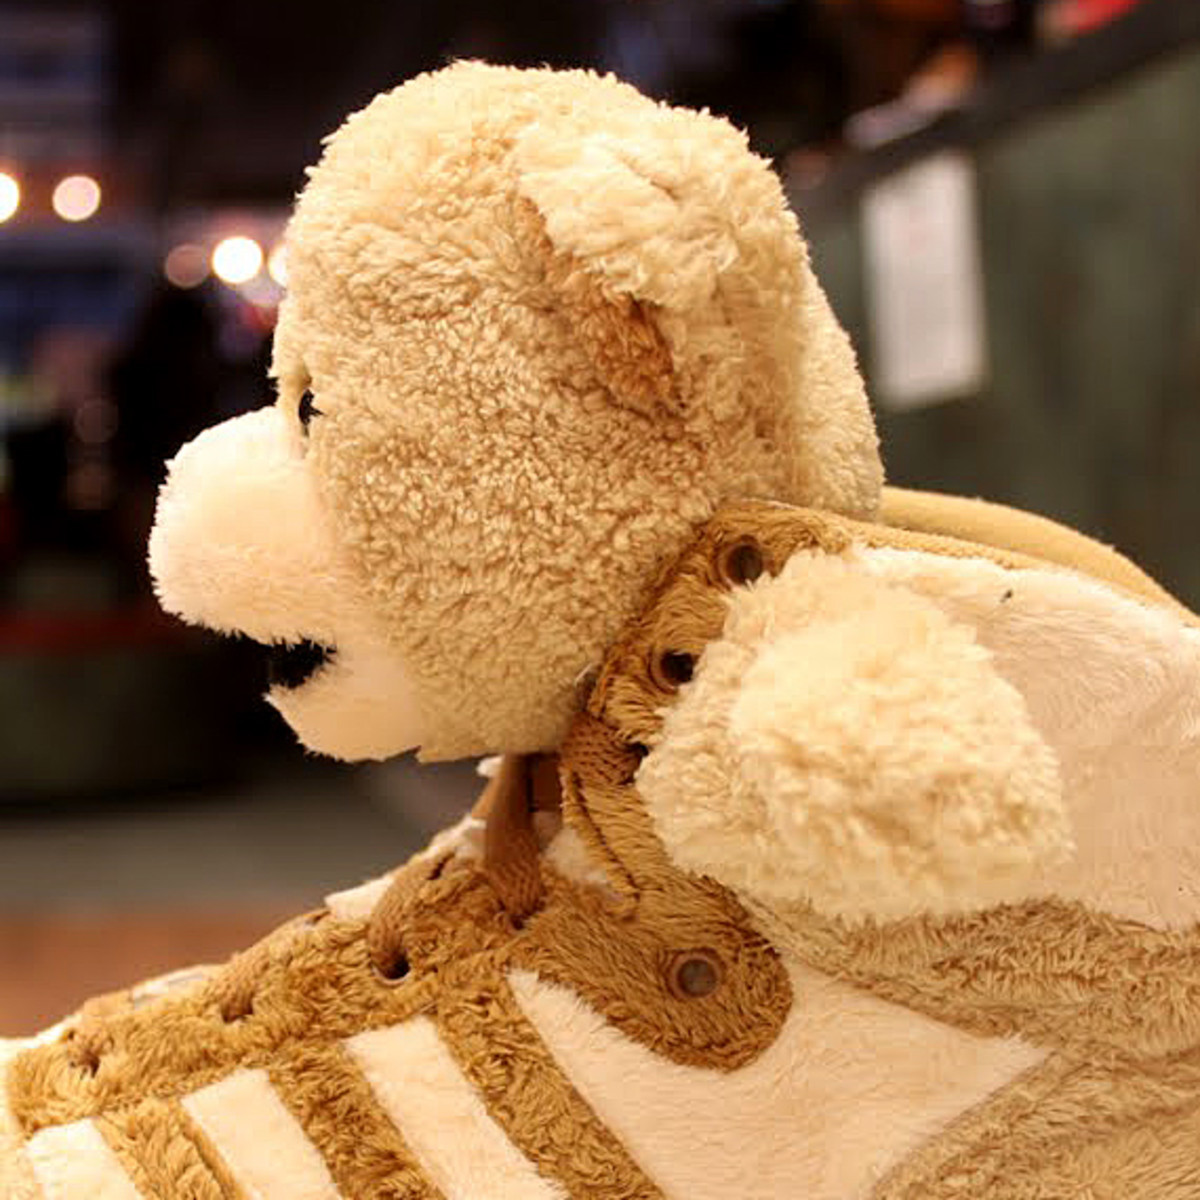 adidas-originals-jeremy-scott-teddy-bear-03a